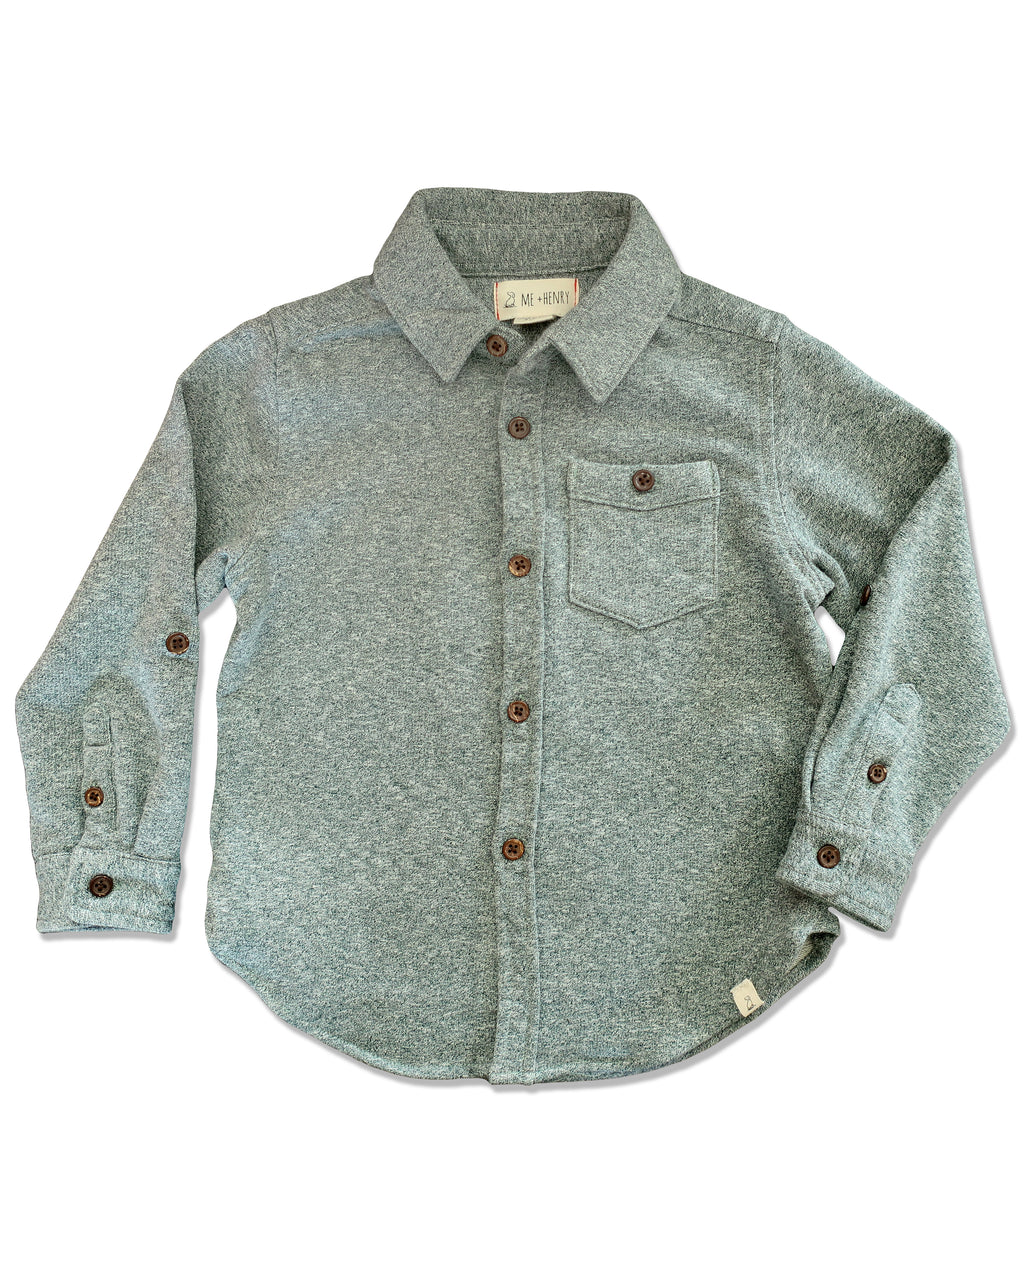 front image of green jersey shirt for boys with long sleeves